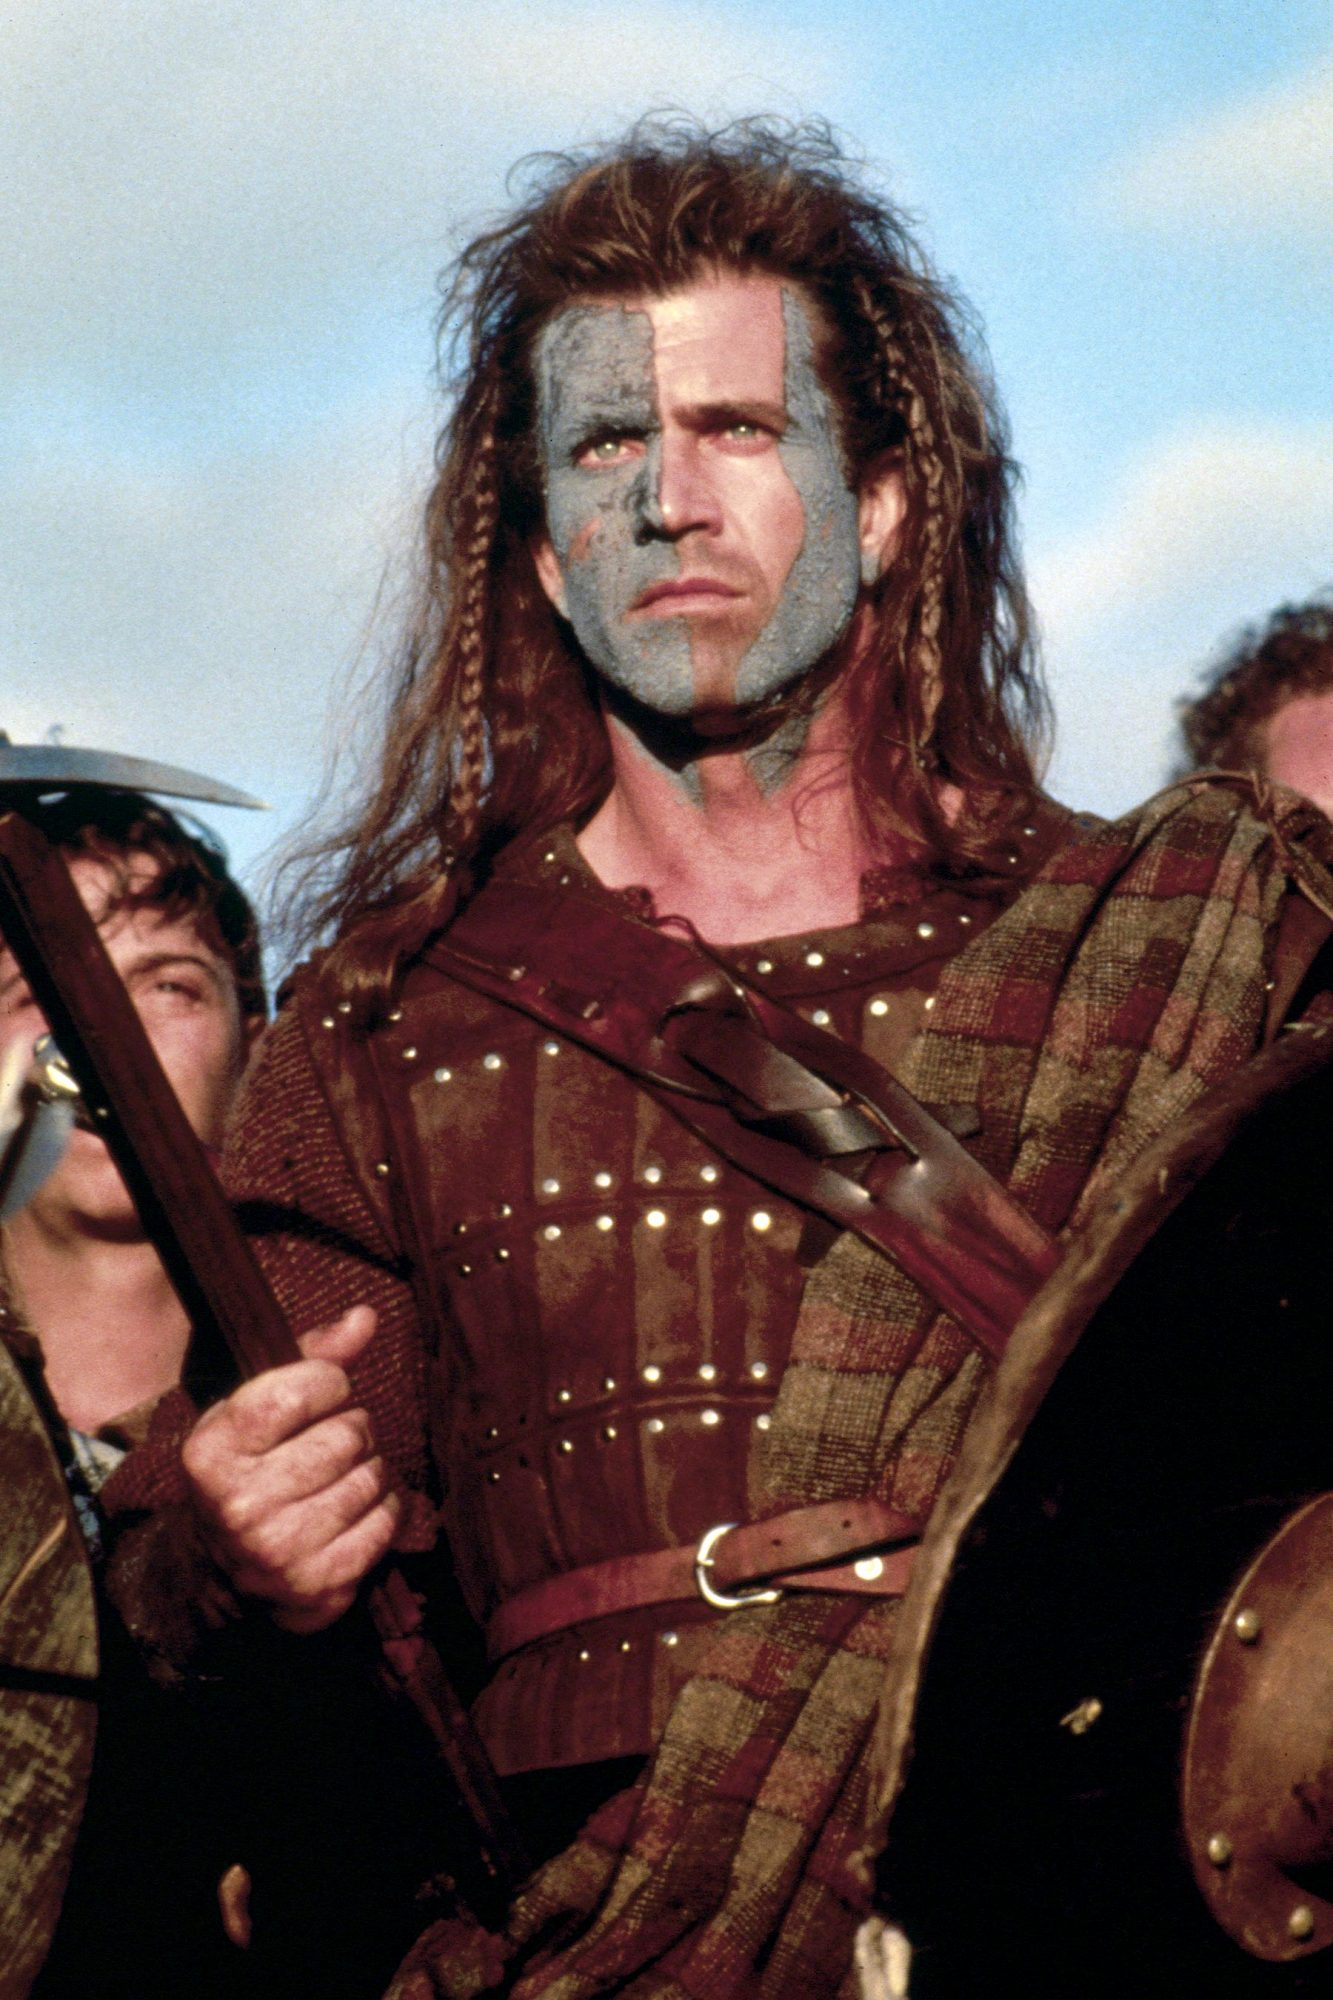 BRAVEHEART, Mel Gibson, 1995. TM and Copyright © 20th Century Fox Film Corp. All rights reserved. Co